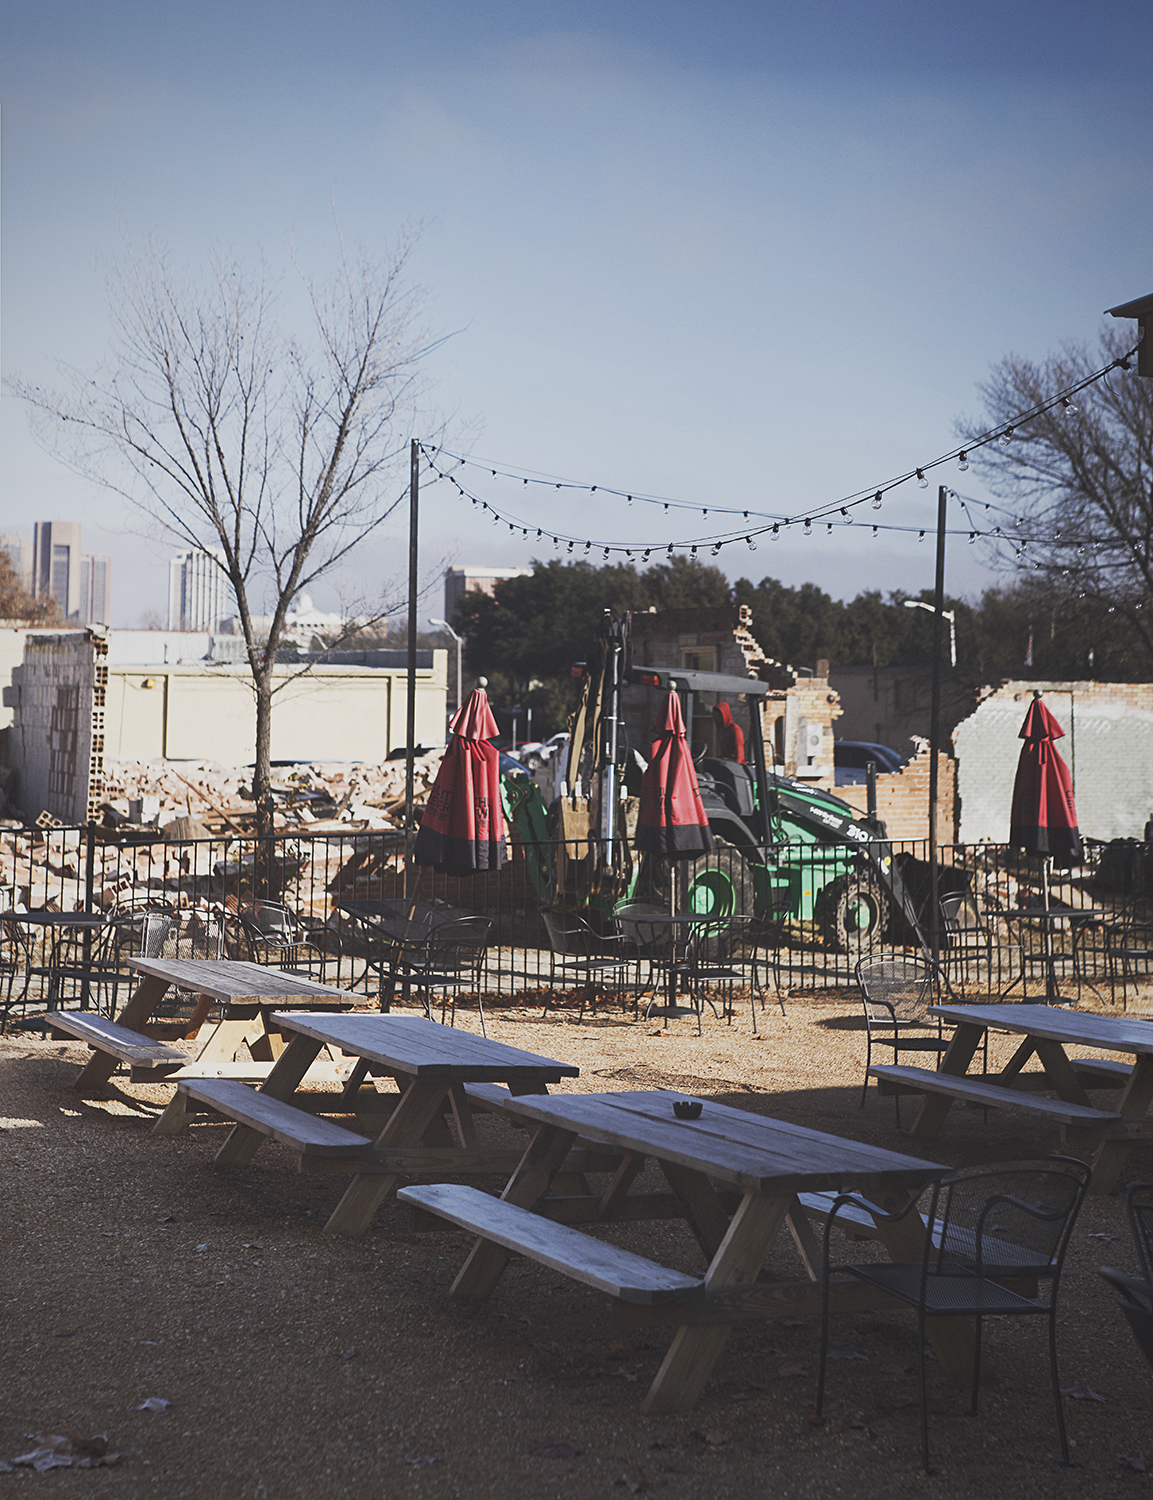 The building beside East Side Social Club that was scheduled to be demolished was torn down this past weekend. This is currently the view at ESSC. Soon it will be an excellent food truck park.